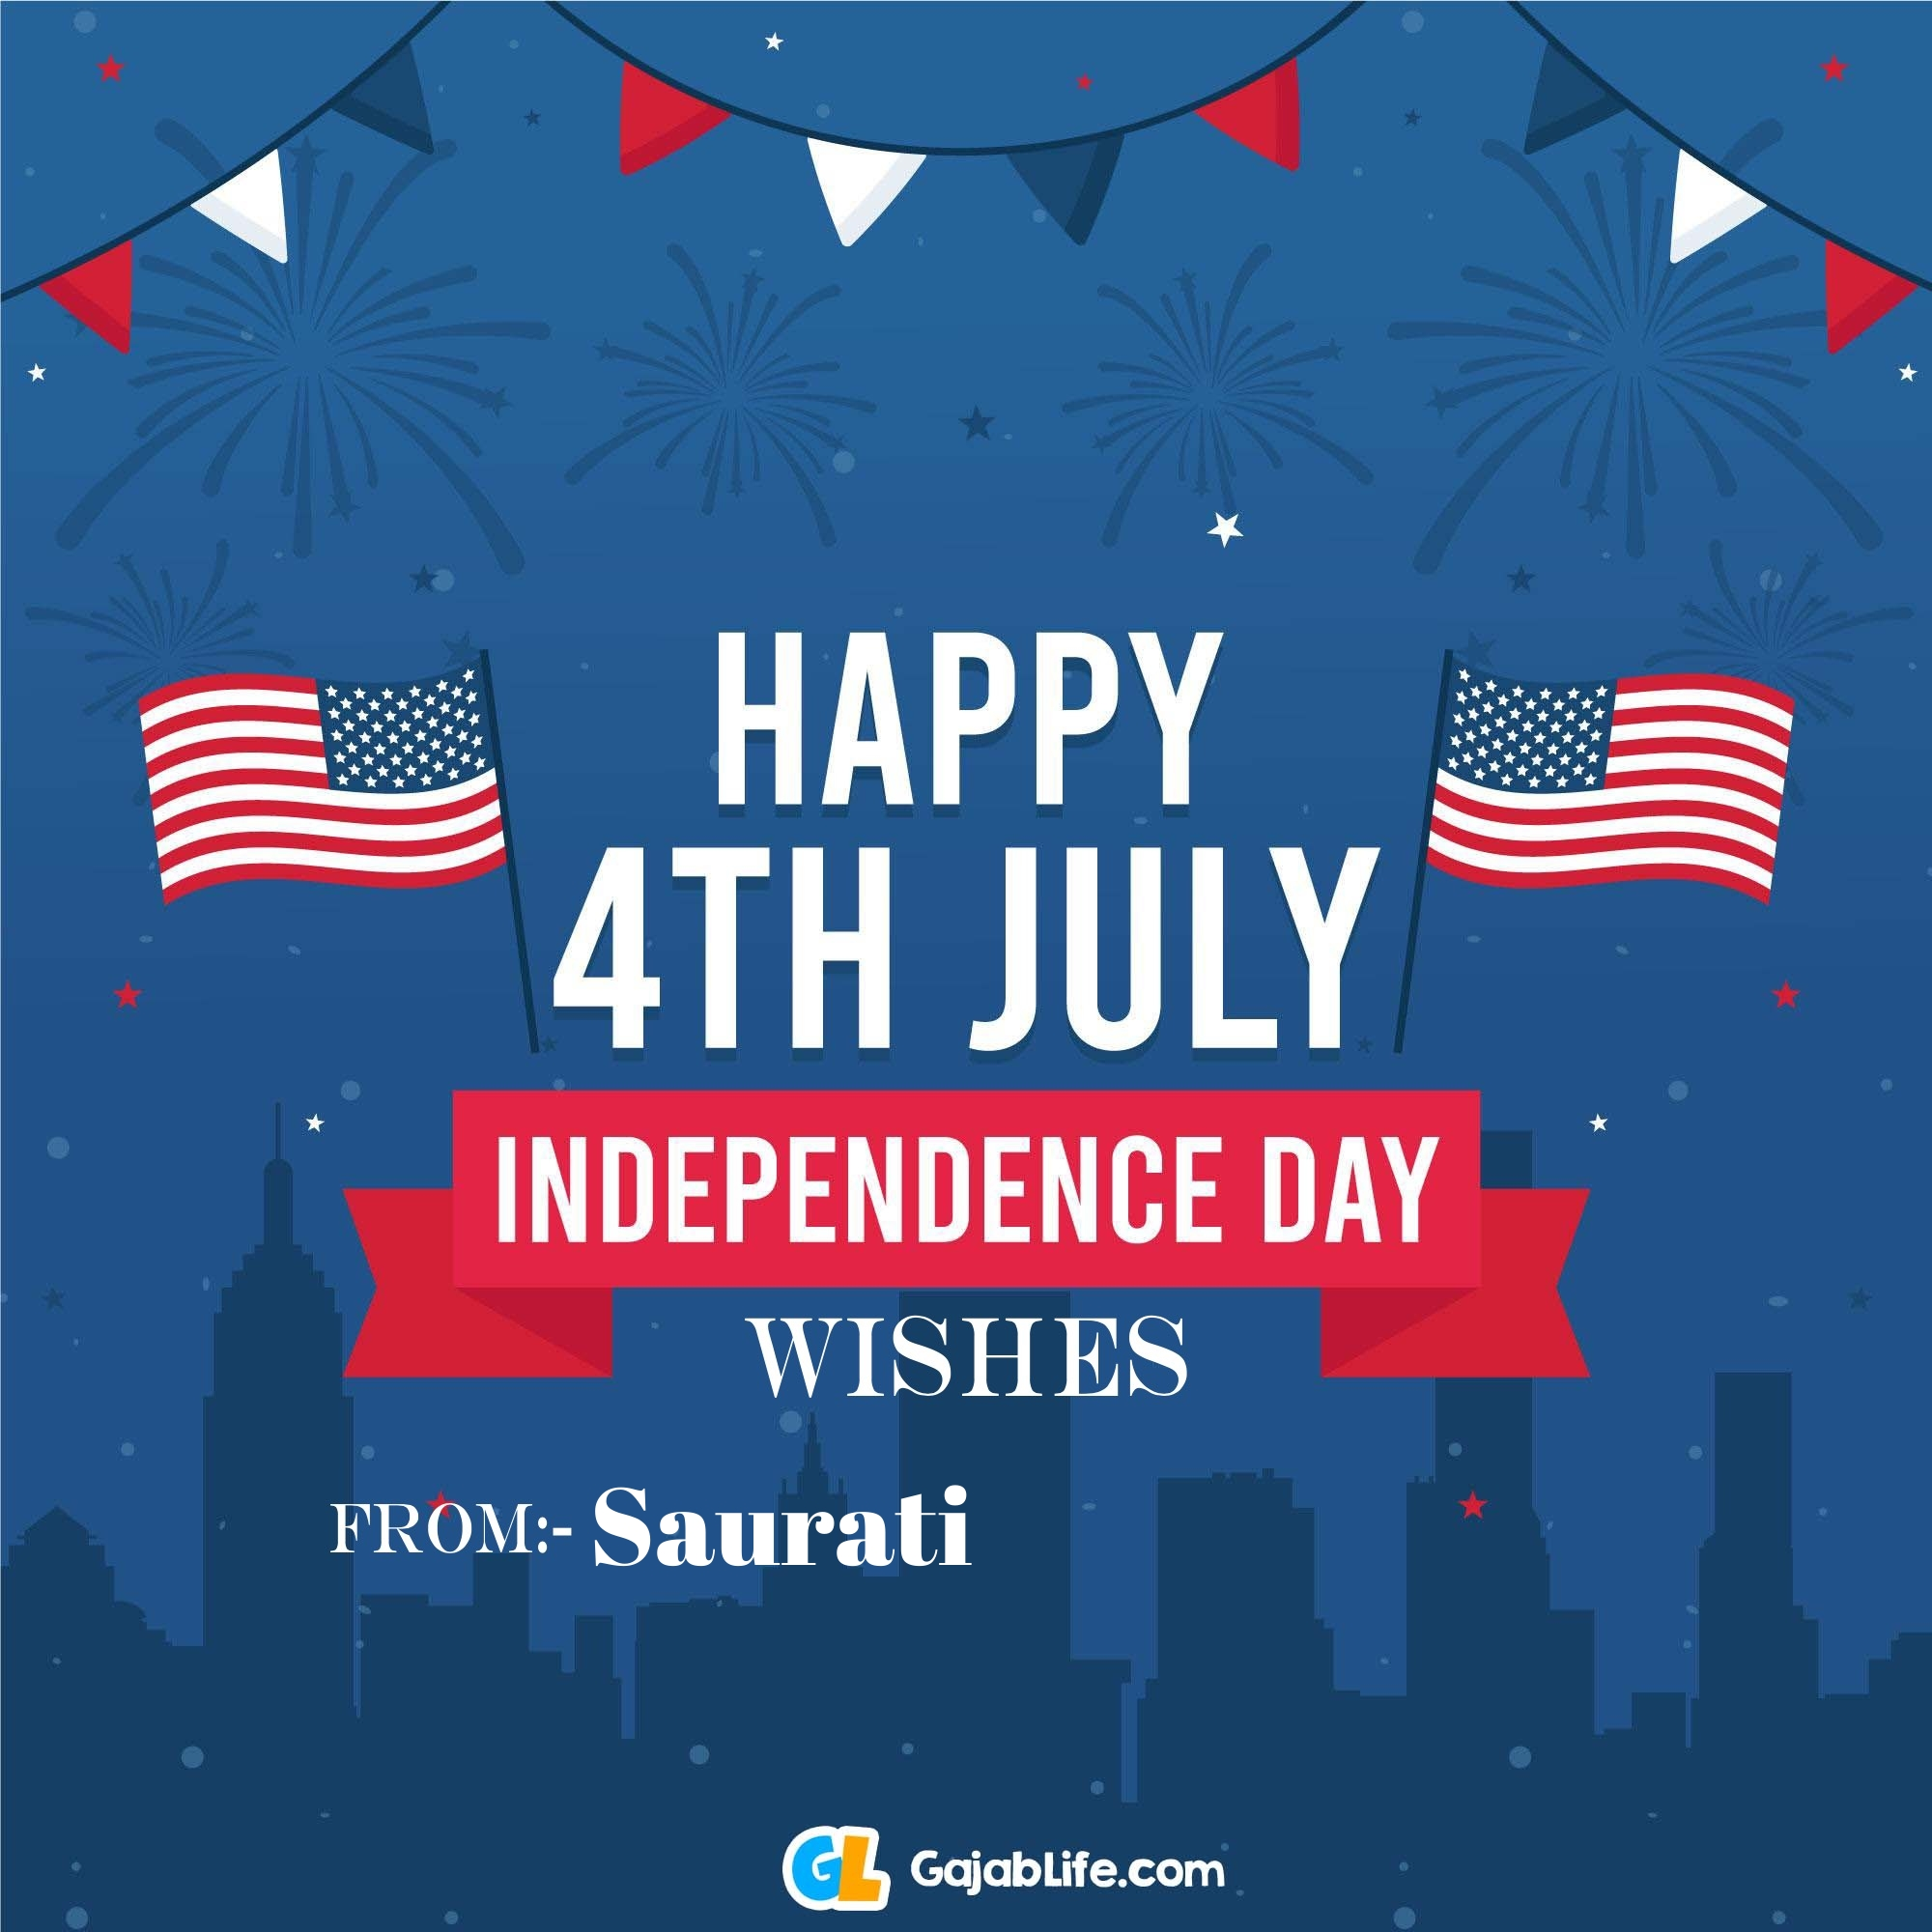 Saurati happy independence day united states of america images